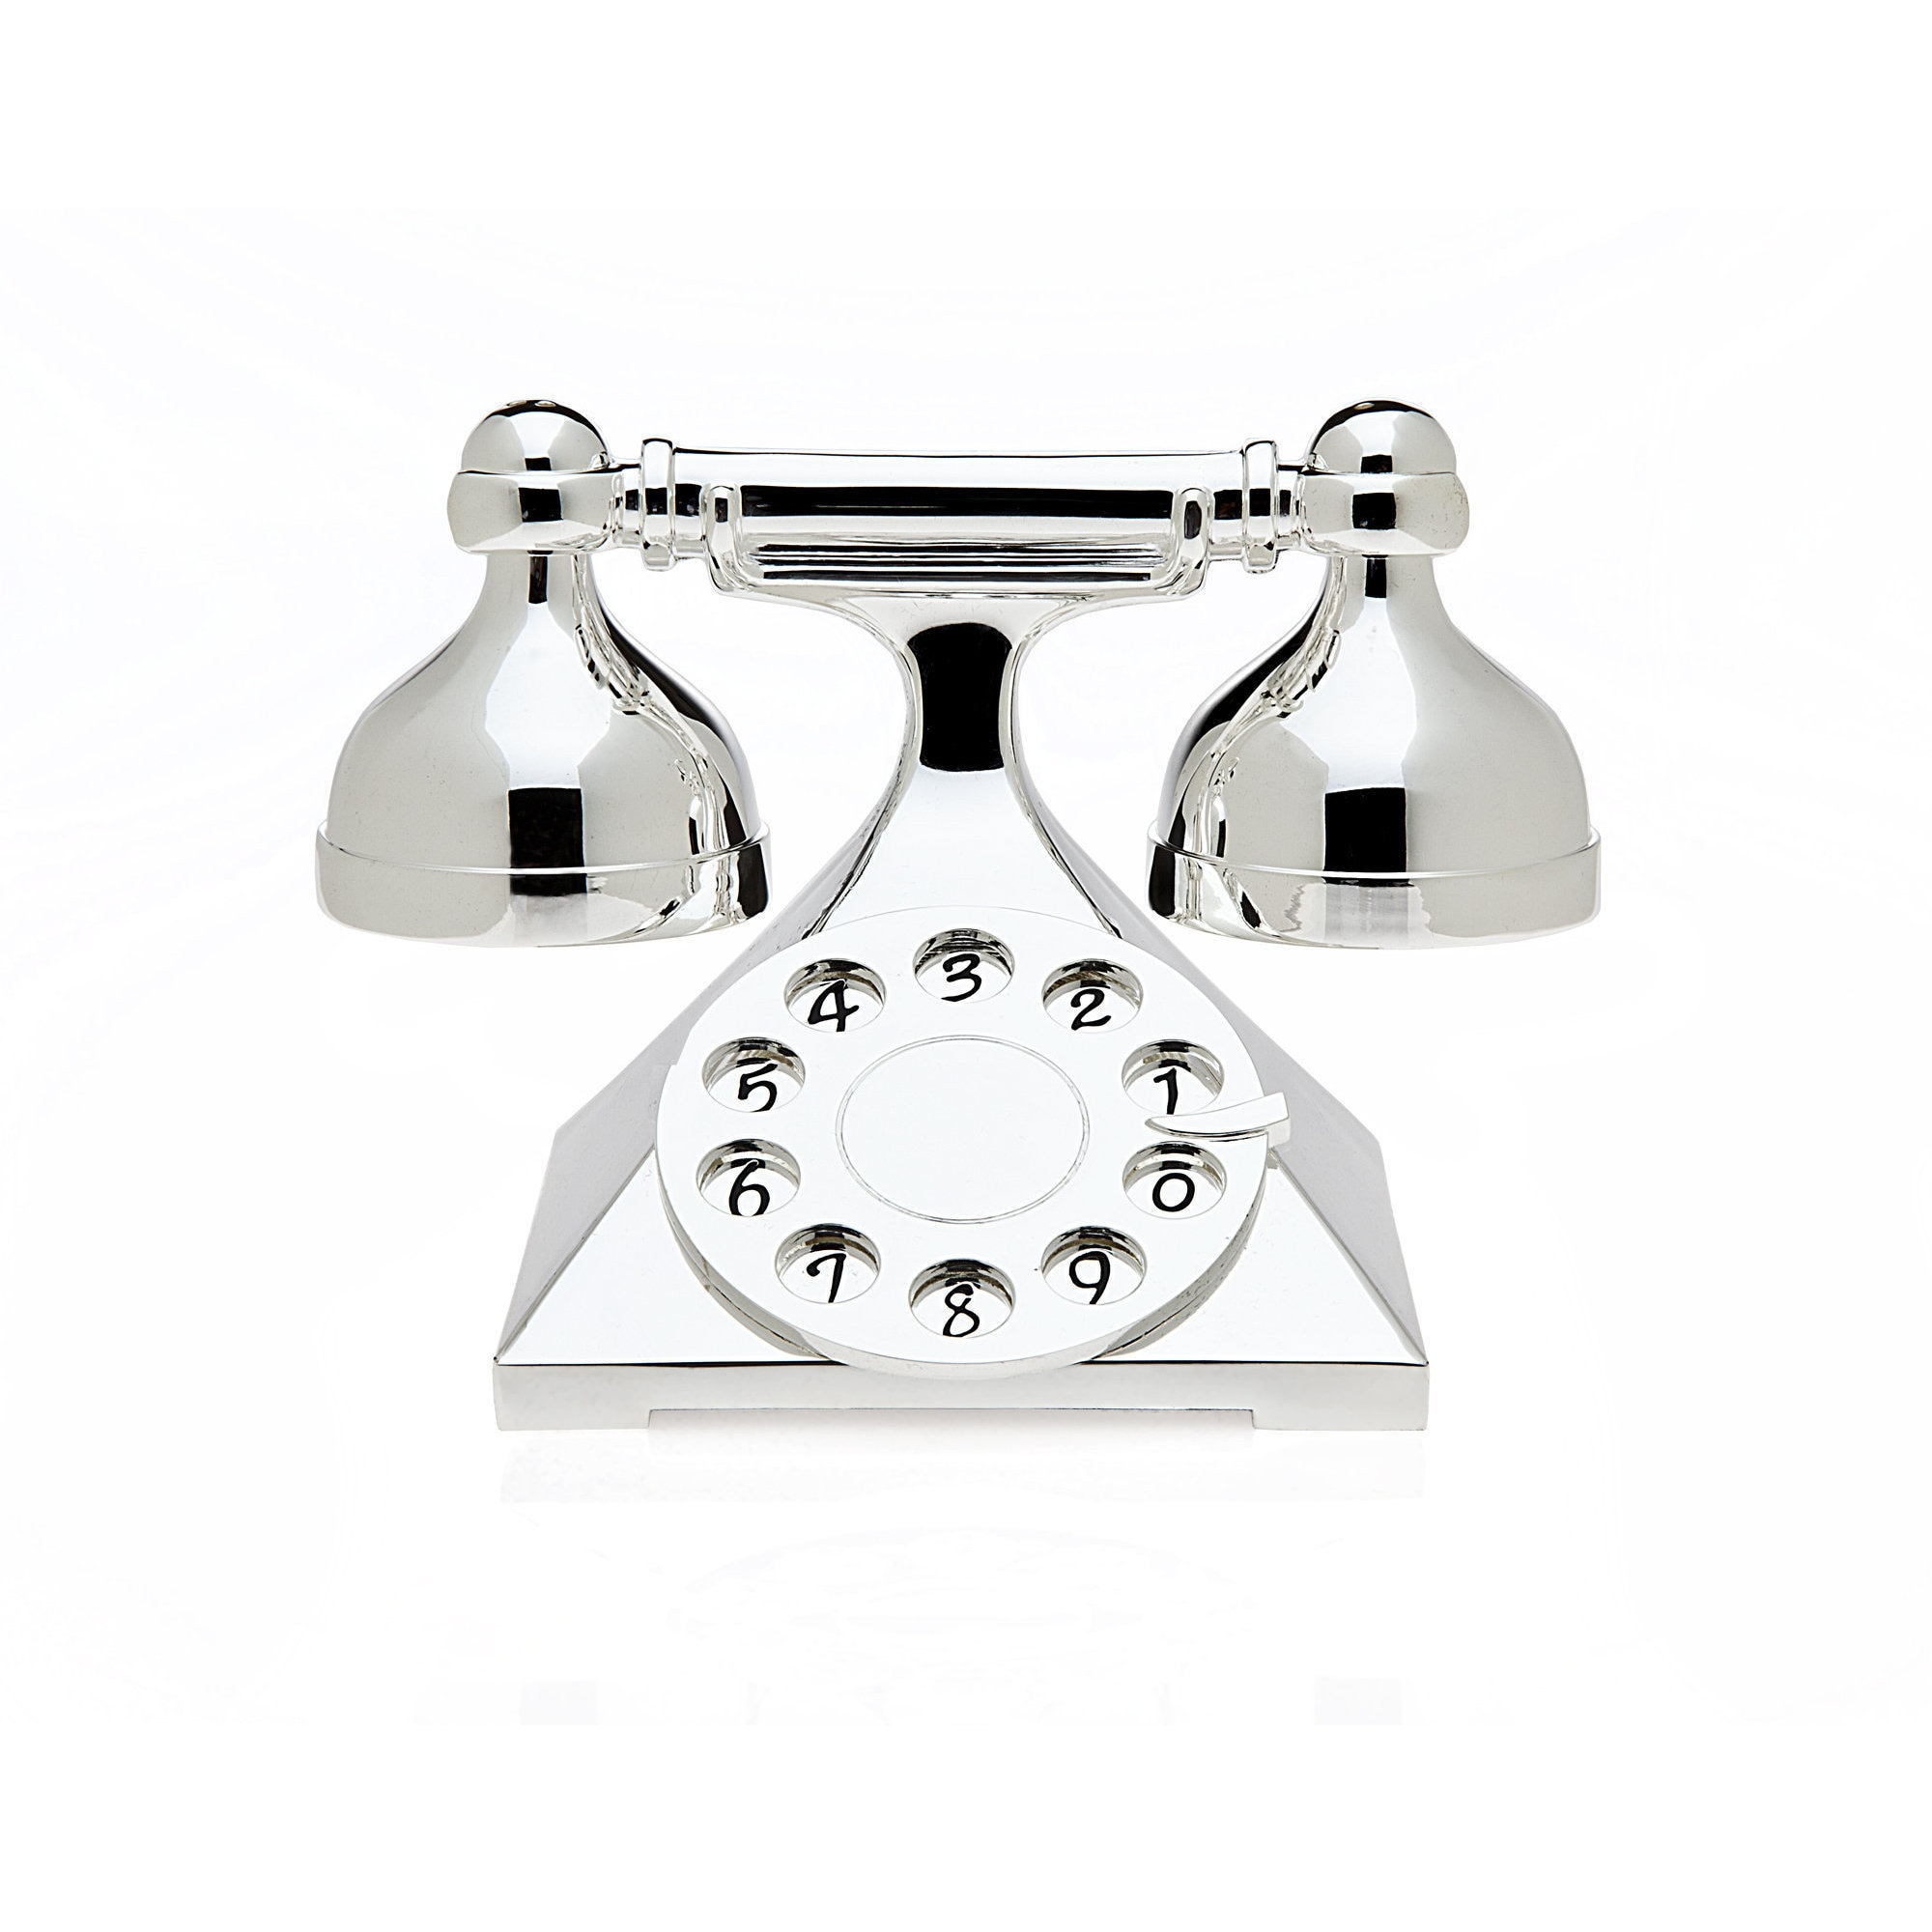 Godinger Silvercolored Metal Telephone Salt and Pepper Sh...